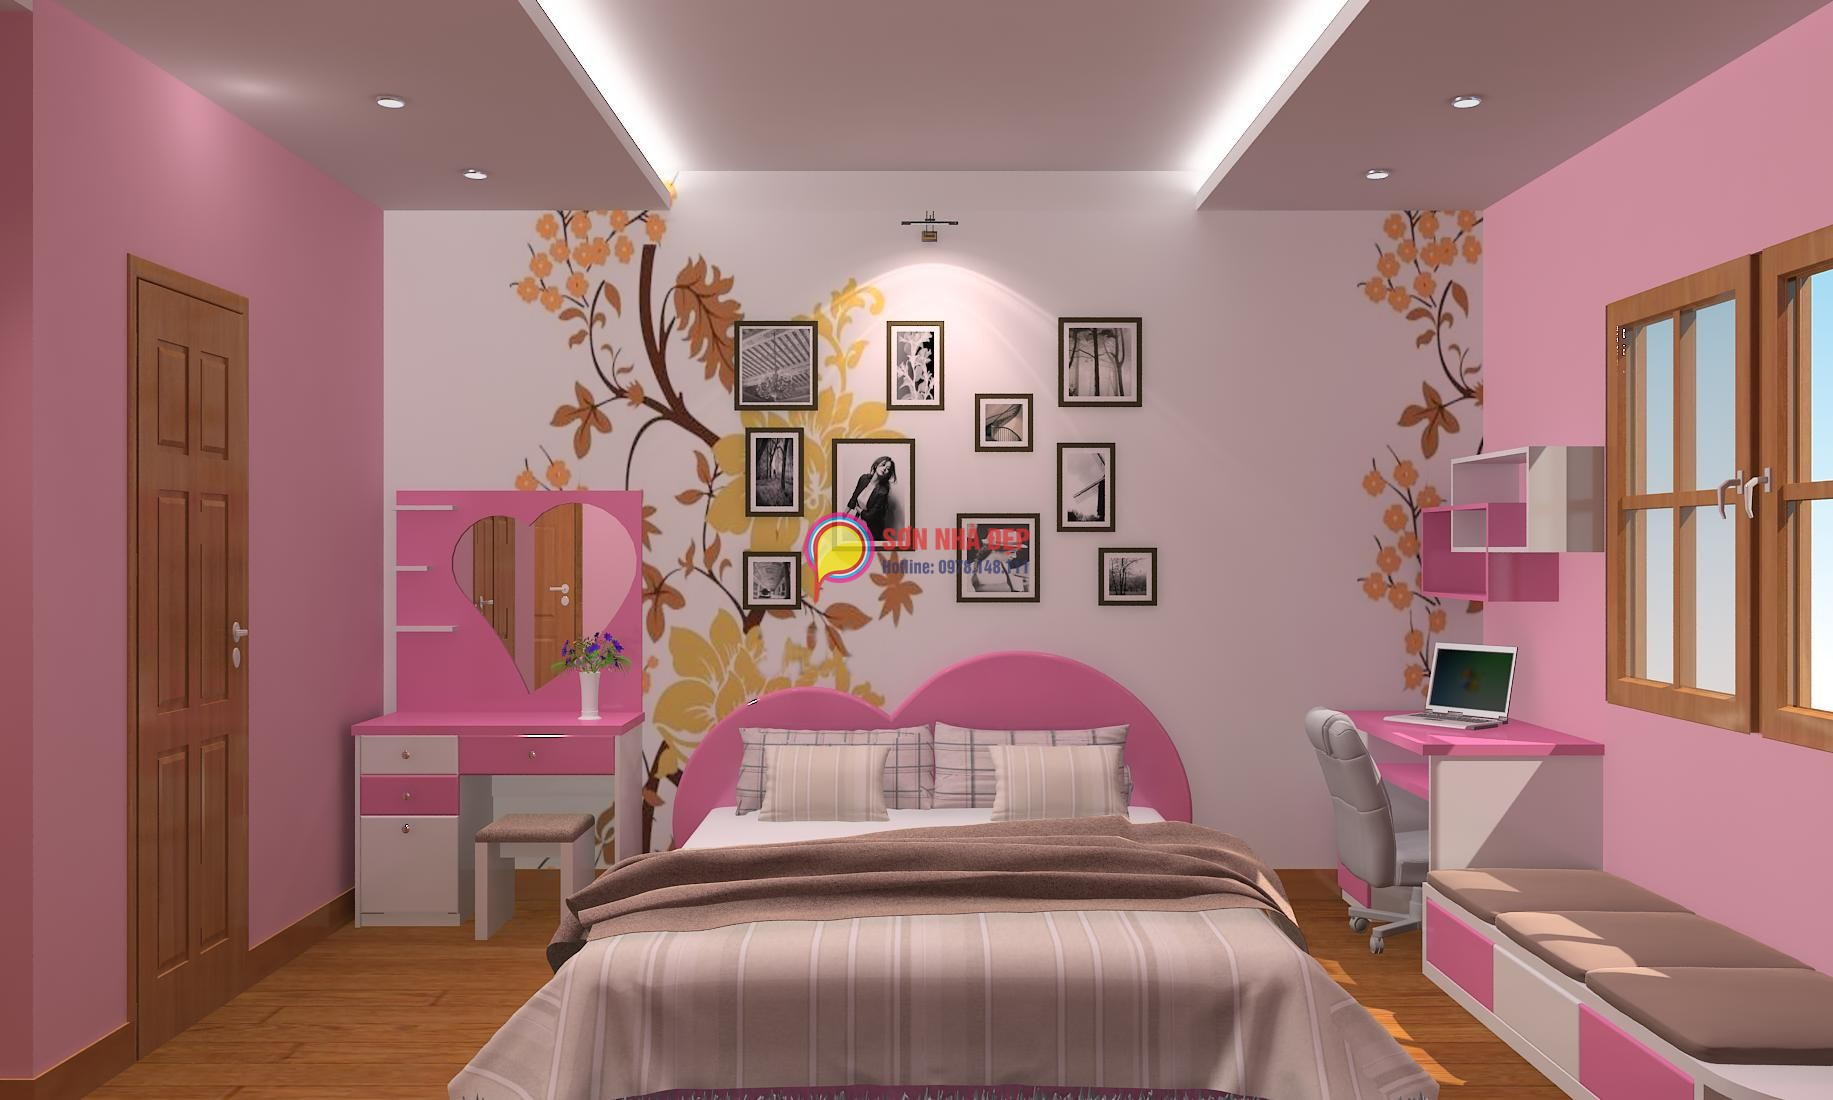 son-trong-nha-dulux- Ambiance- 5 in 1-4